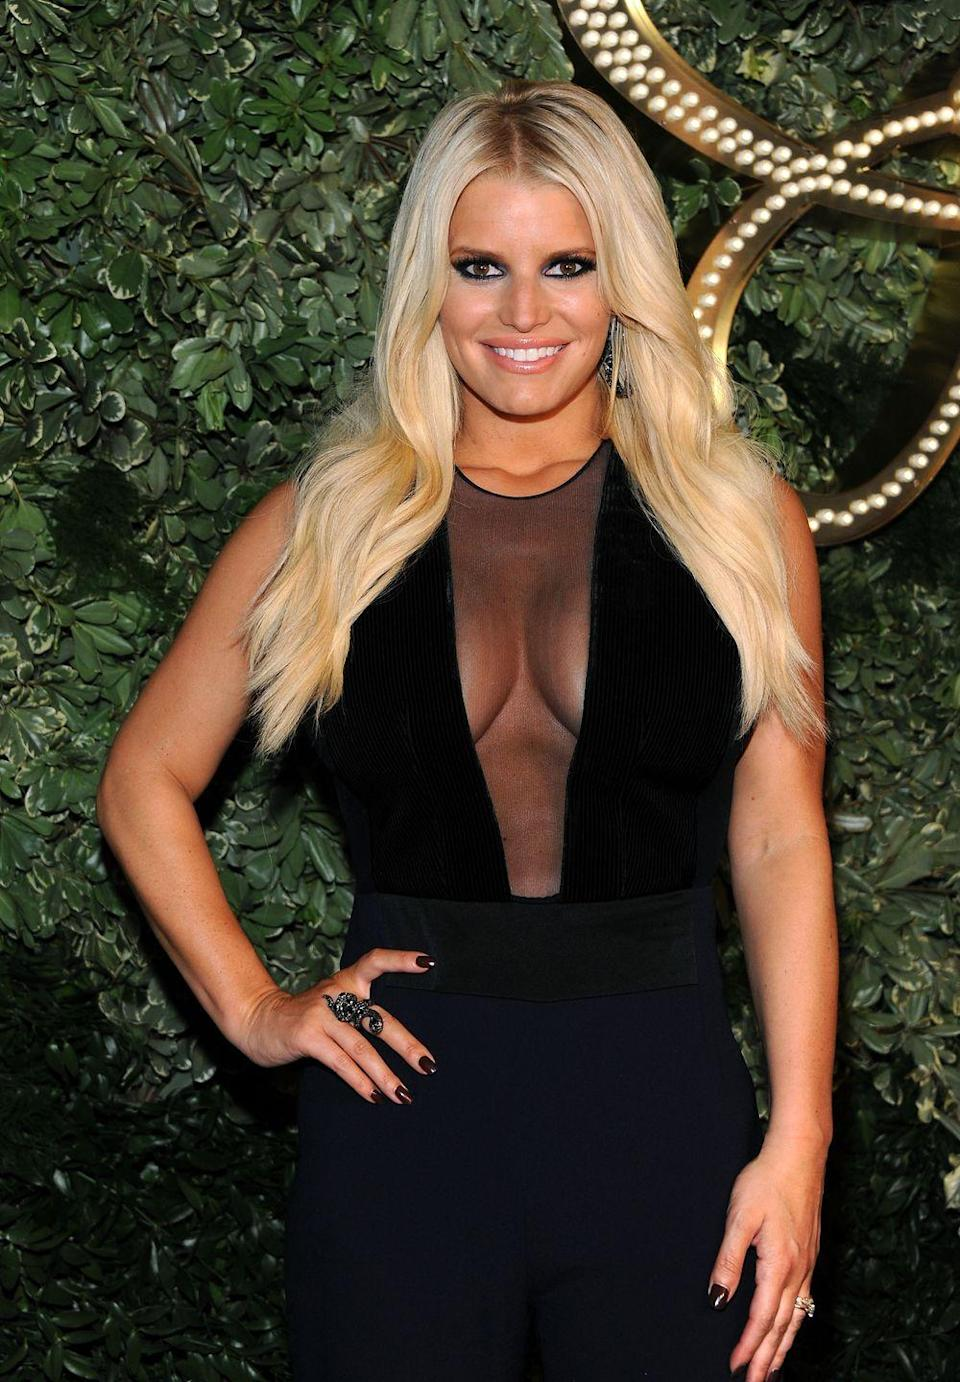 "<p>Jessica Simpson <a href=""https://www.glamourmagazine.co.uk/article/lips-dont-lie"" rel=""nofollow noopener"" target=""_blank"" data-ylk=""slk:told Glamour in 2006"" class=""link rapid-noclick-resp"">told <em>Glamour</em> in 2006</a> that she hated her lip injections. ""I had that Restylane stuff,"" she said. ""It looked fake to me. I didn't like that. But…it went away in, like, four months. My lips are back to what they were. Thank God!""</p>"